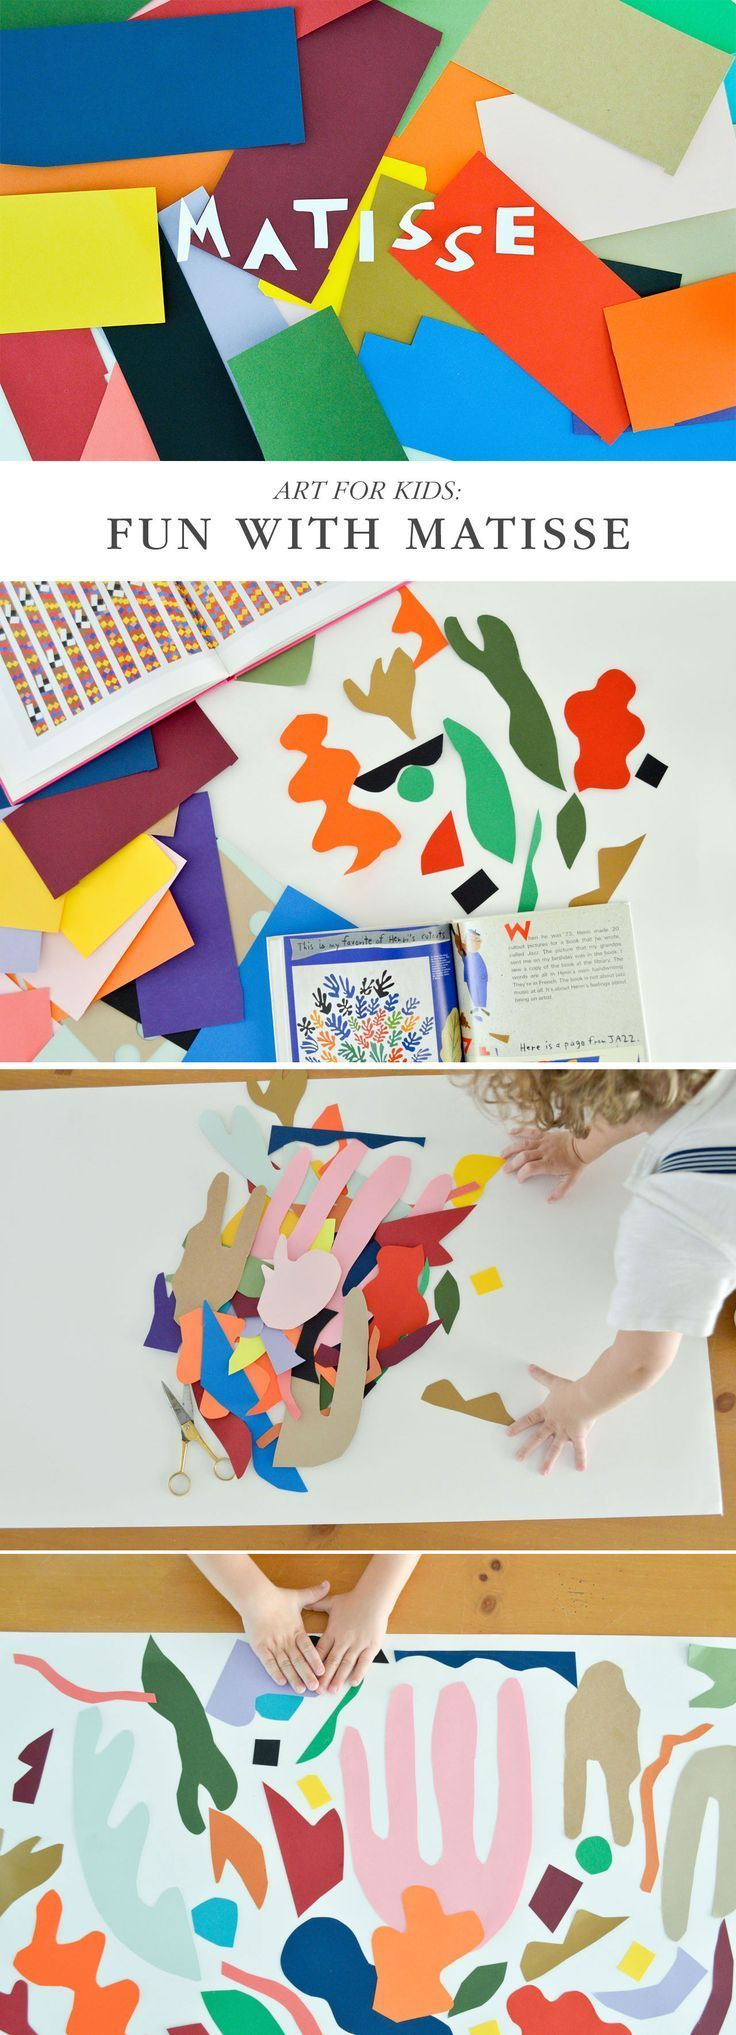 Lovely exploration of Matisse for artists young and old...